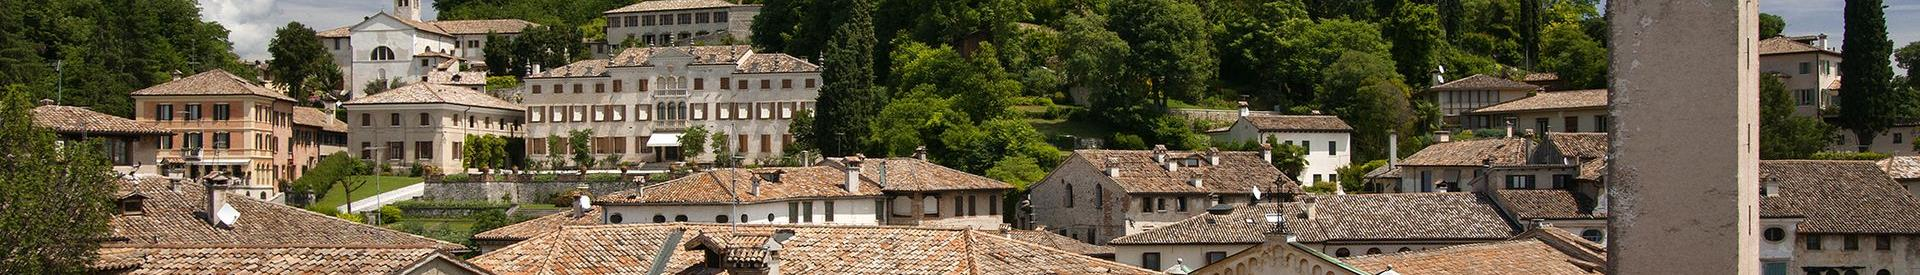 Asolo Overview